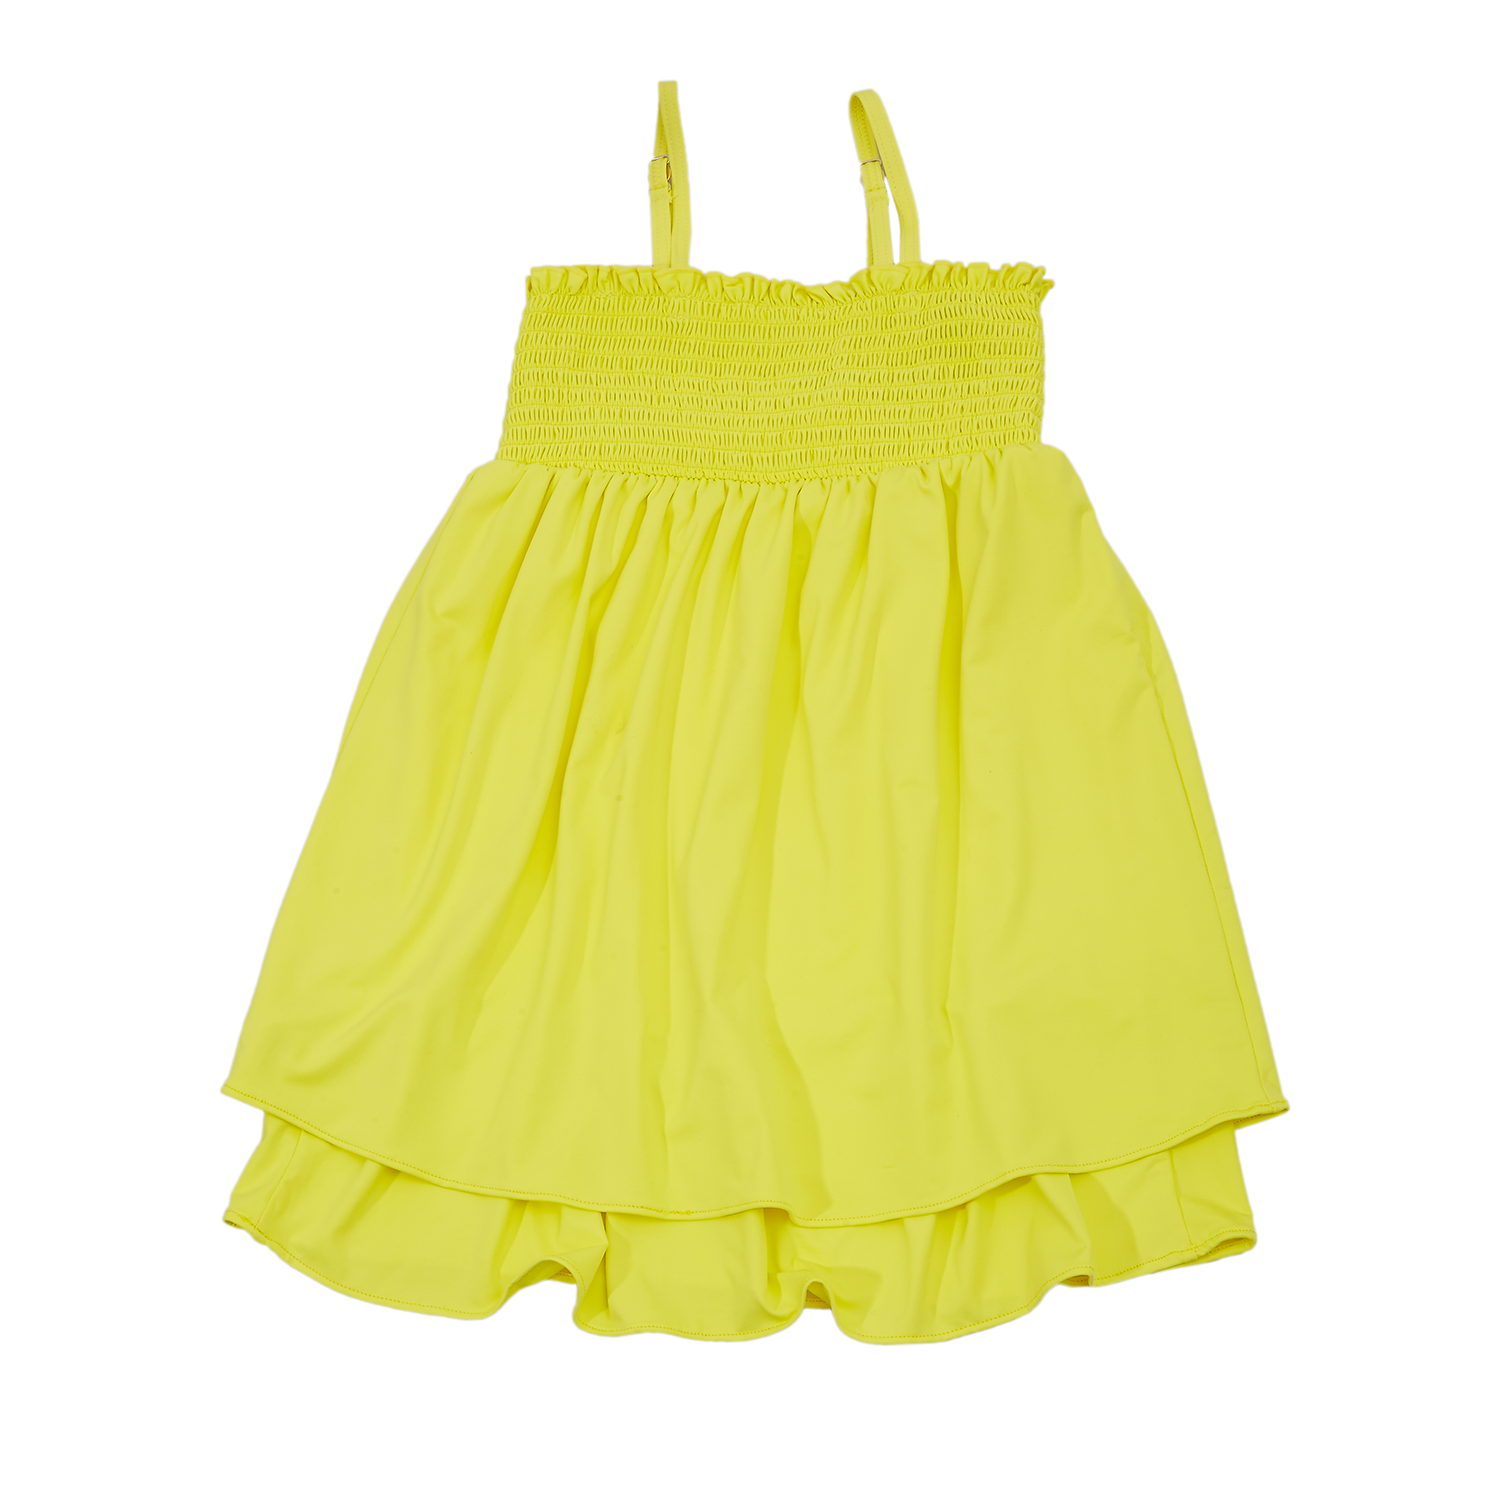 JUICY COUTURE KIDS – Παιδικό μαγιό Juicy Couture κίτρινο